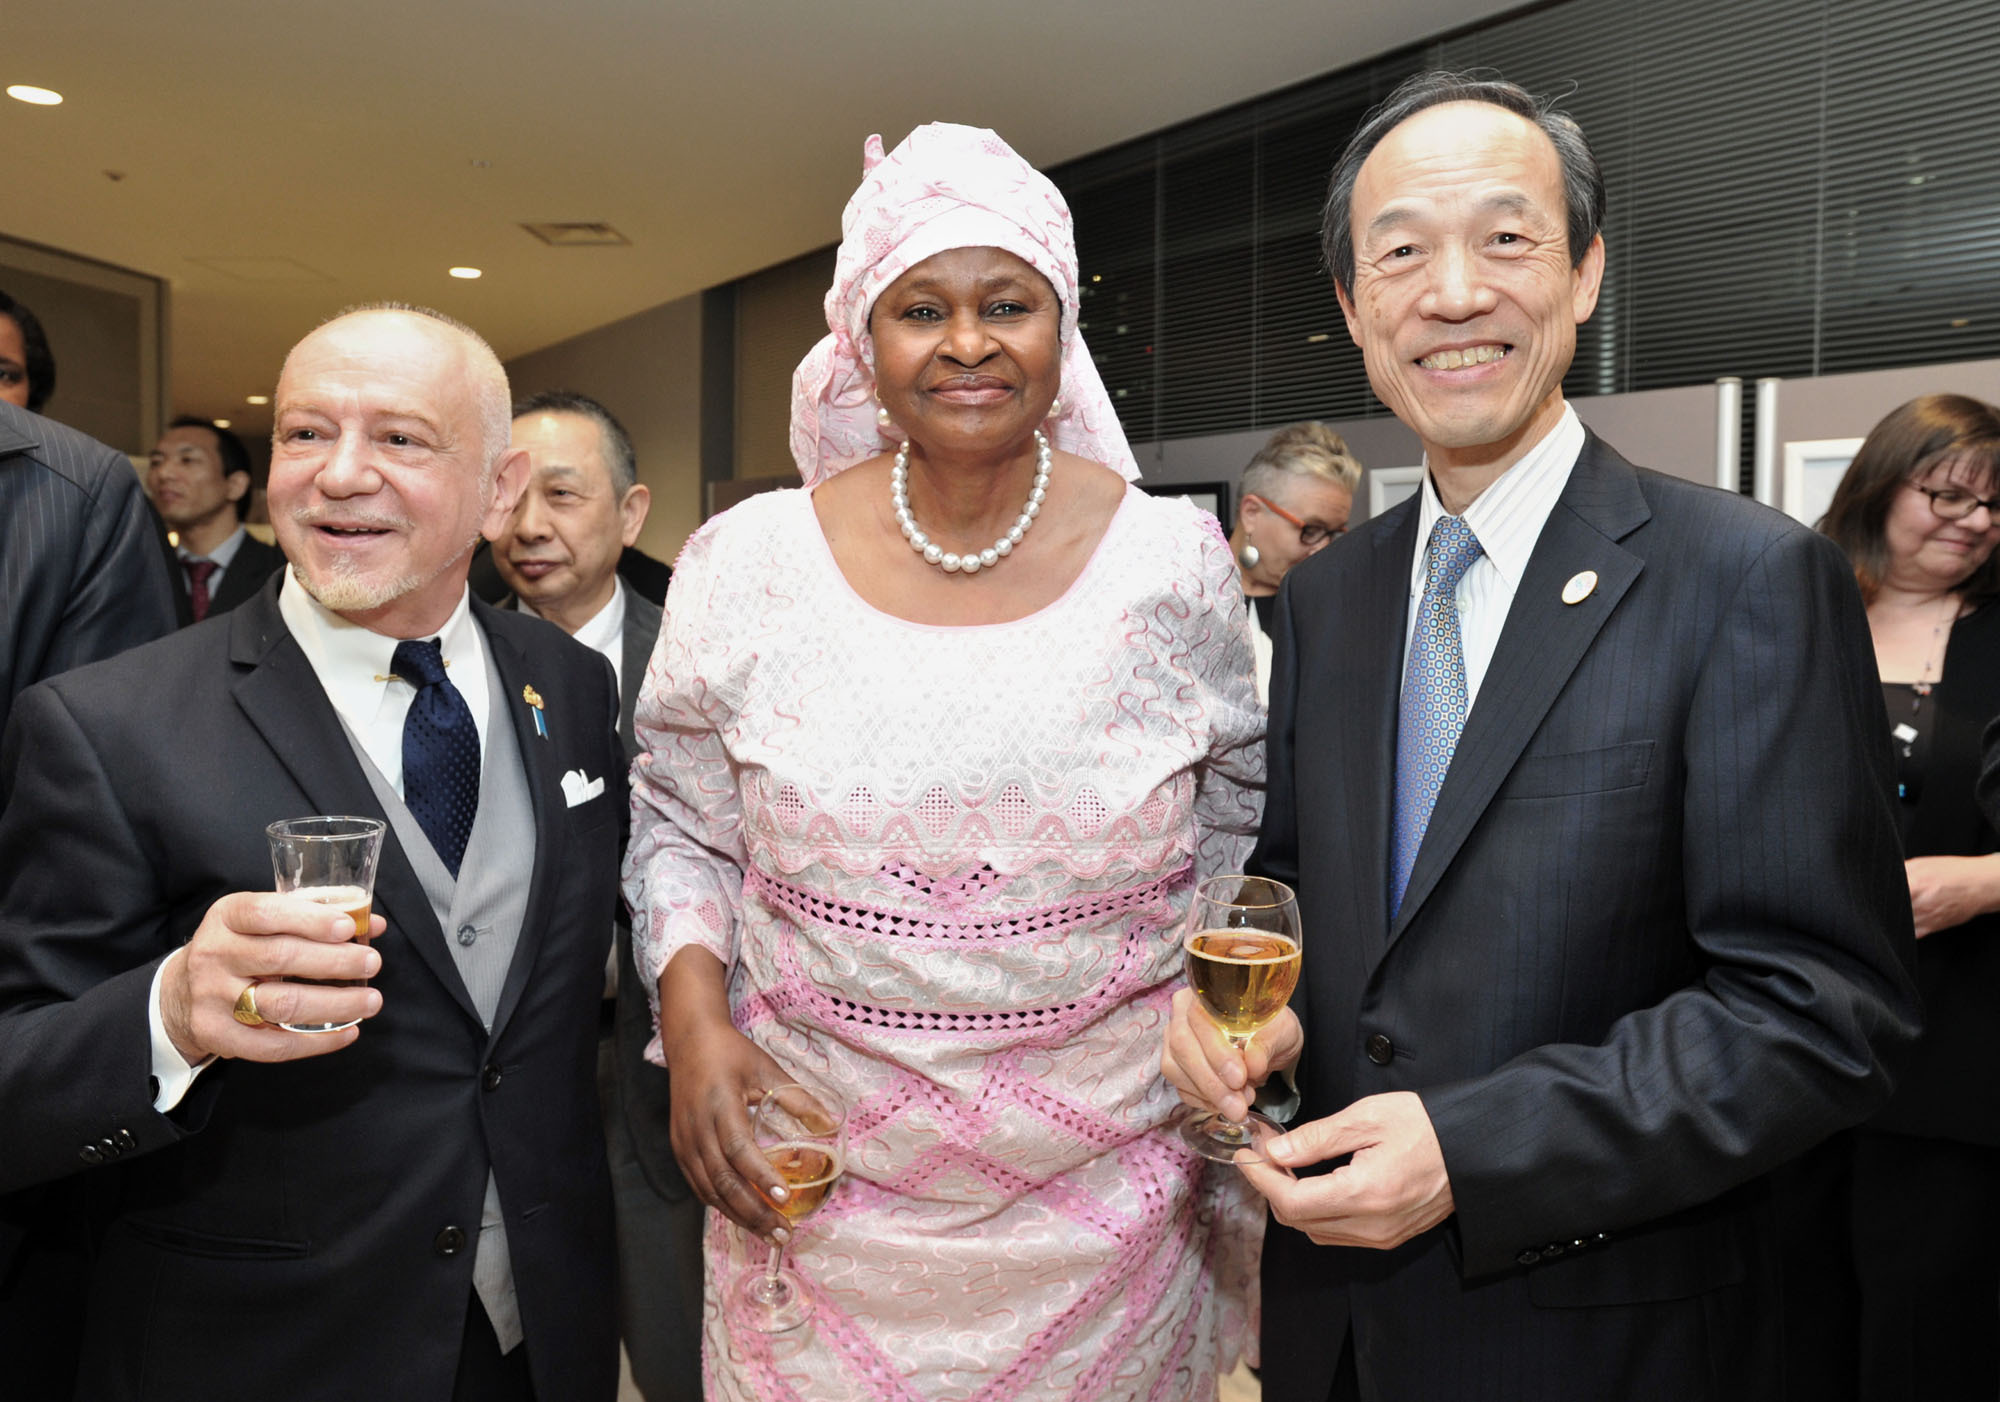 Namibia Ambassador Sophia-Namupa Nangombe (center) poses with Dean of the African Diplomatic Corps. and San Marino Ambassador Manlio Cadelo (left) and  Minato Ward Mayor Masaaki Takei during a reception to celebrate the 26th anniversary of Namibia's National Day at the Akasaka Regional City Office in Tokyo on March 24. | YOSHIAKI MIURA